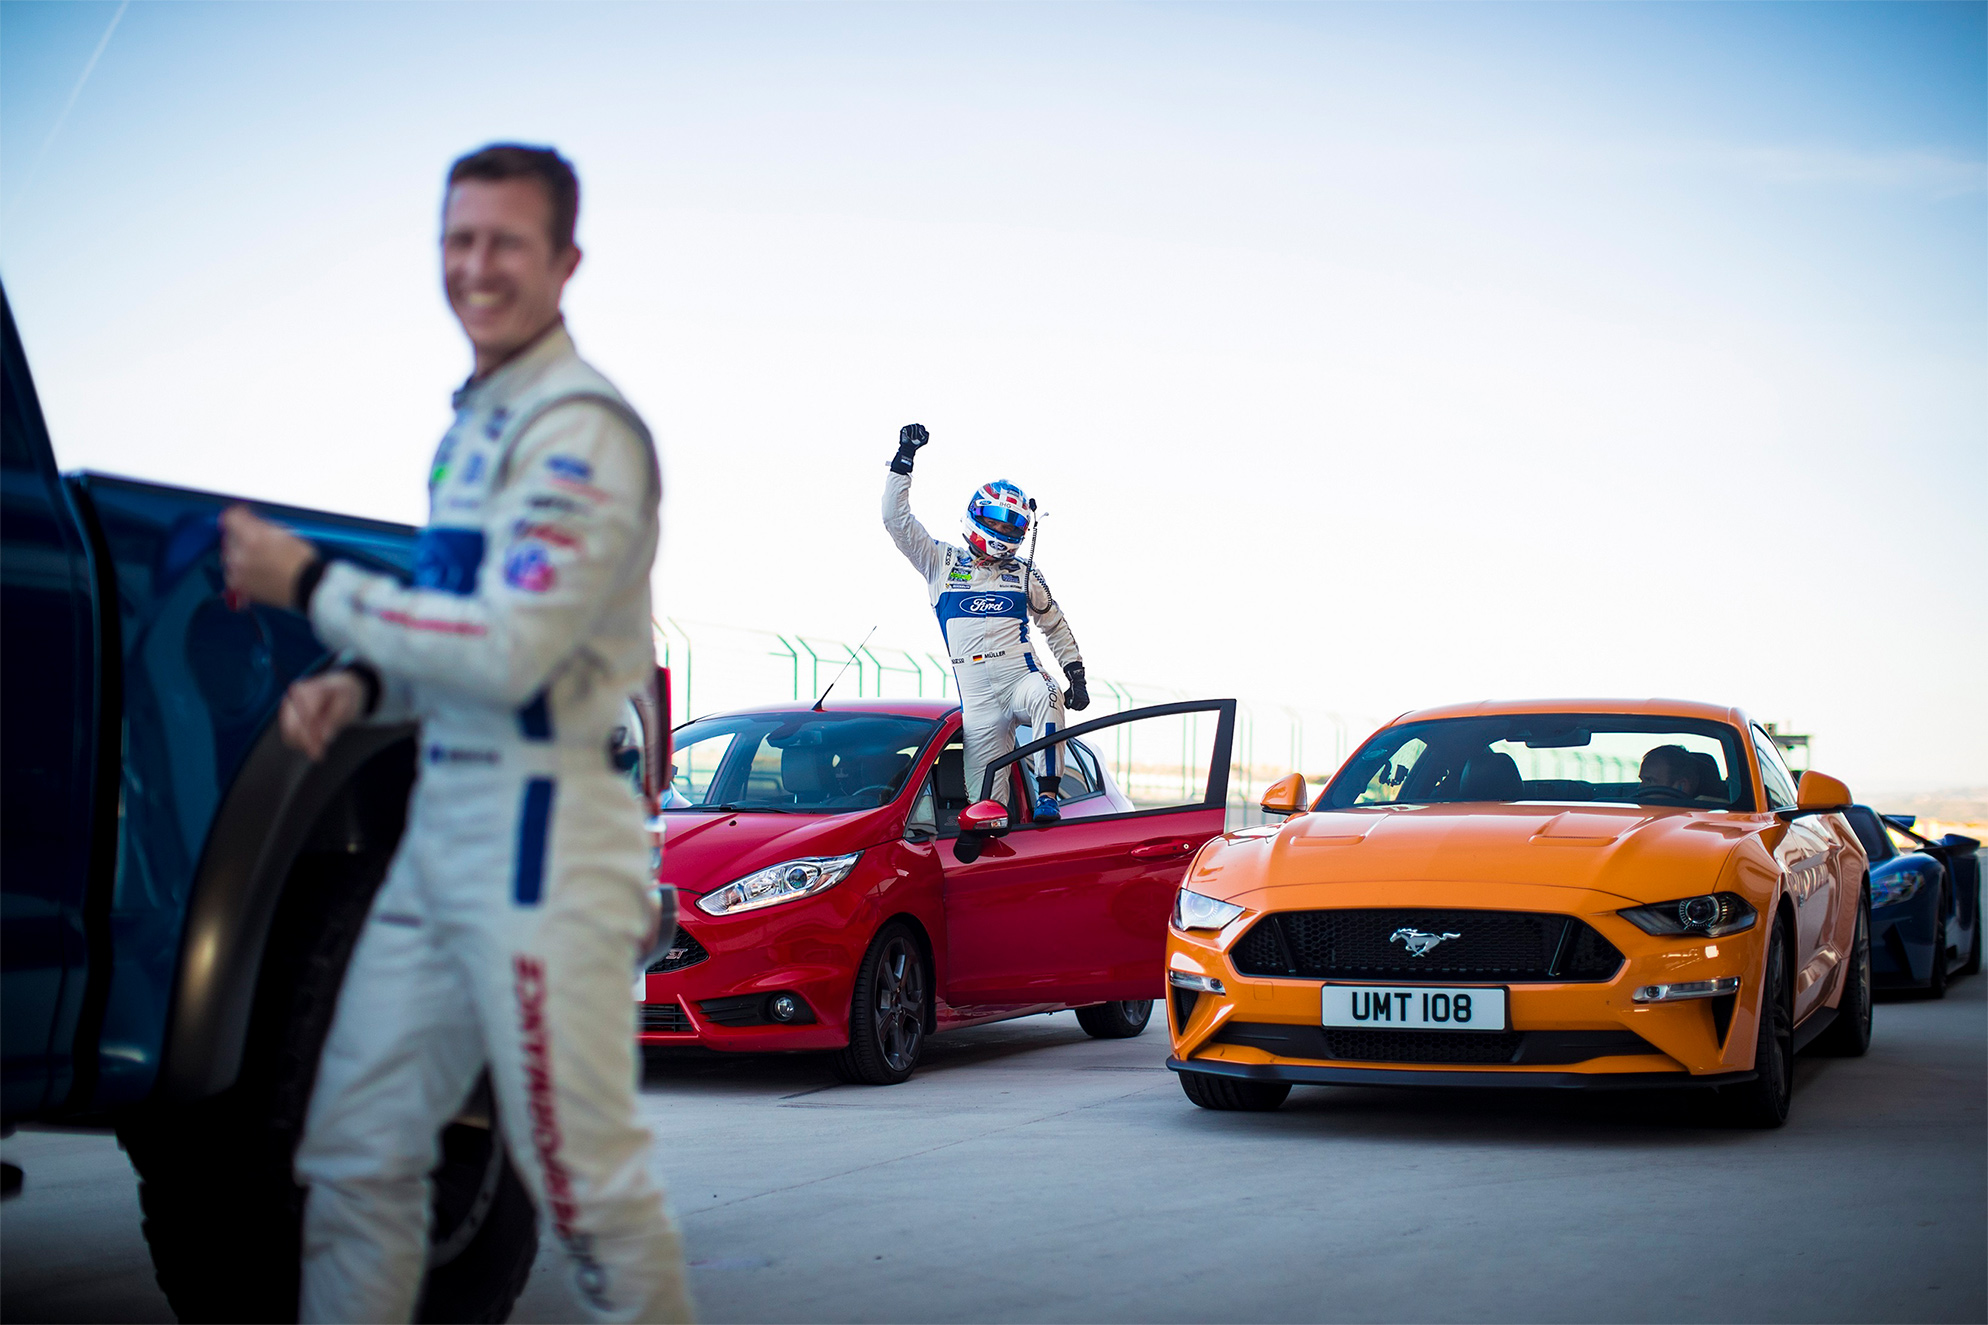 TrackWorthy - Dirk Muller with the Fiesta ST